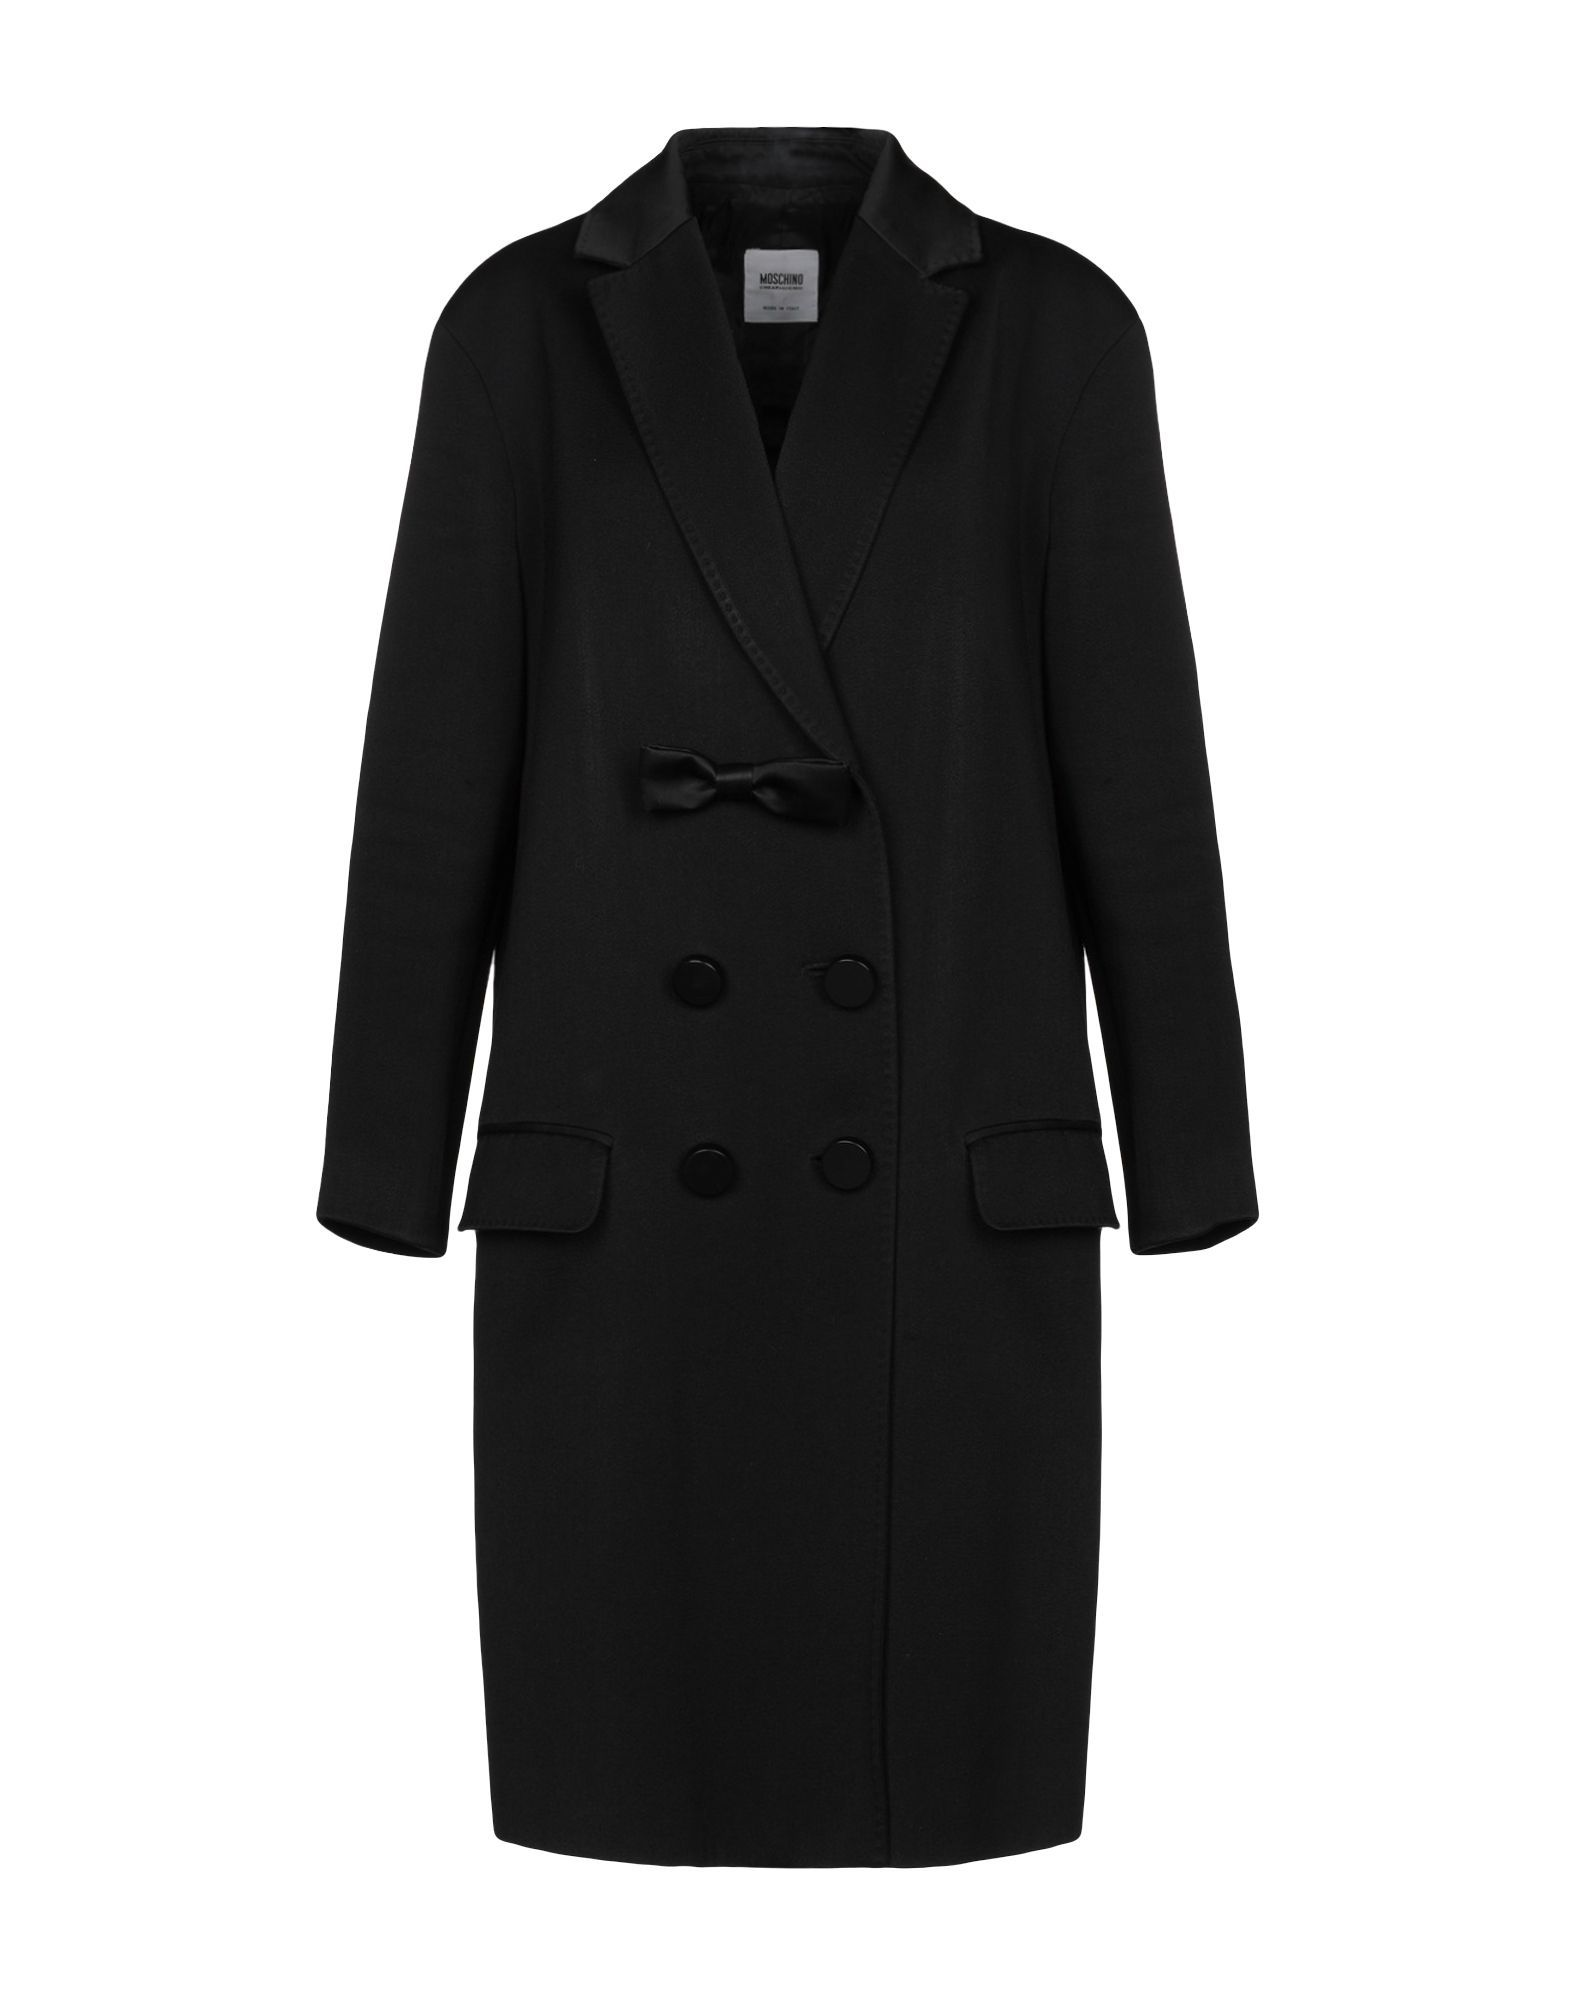 Moschino Cheap And Chic Black Wool Double Breasted Coat